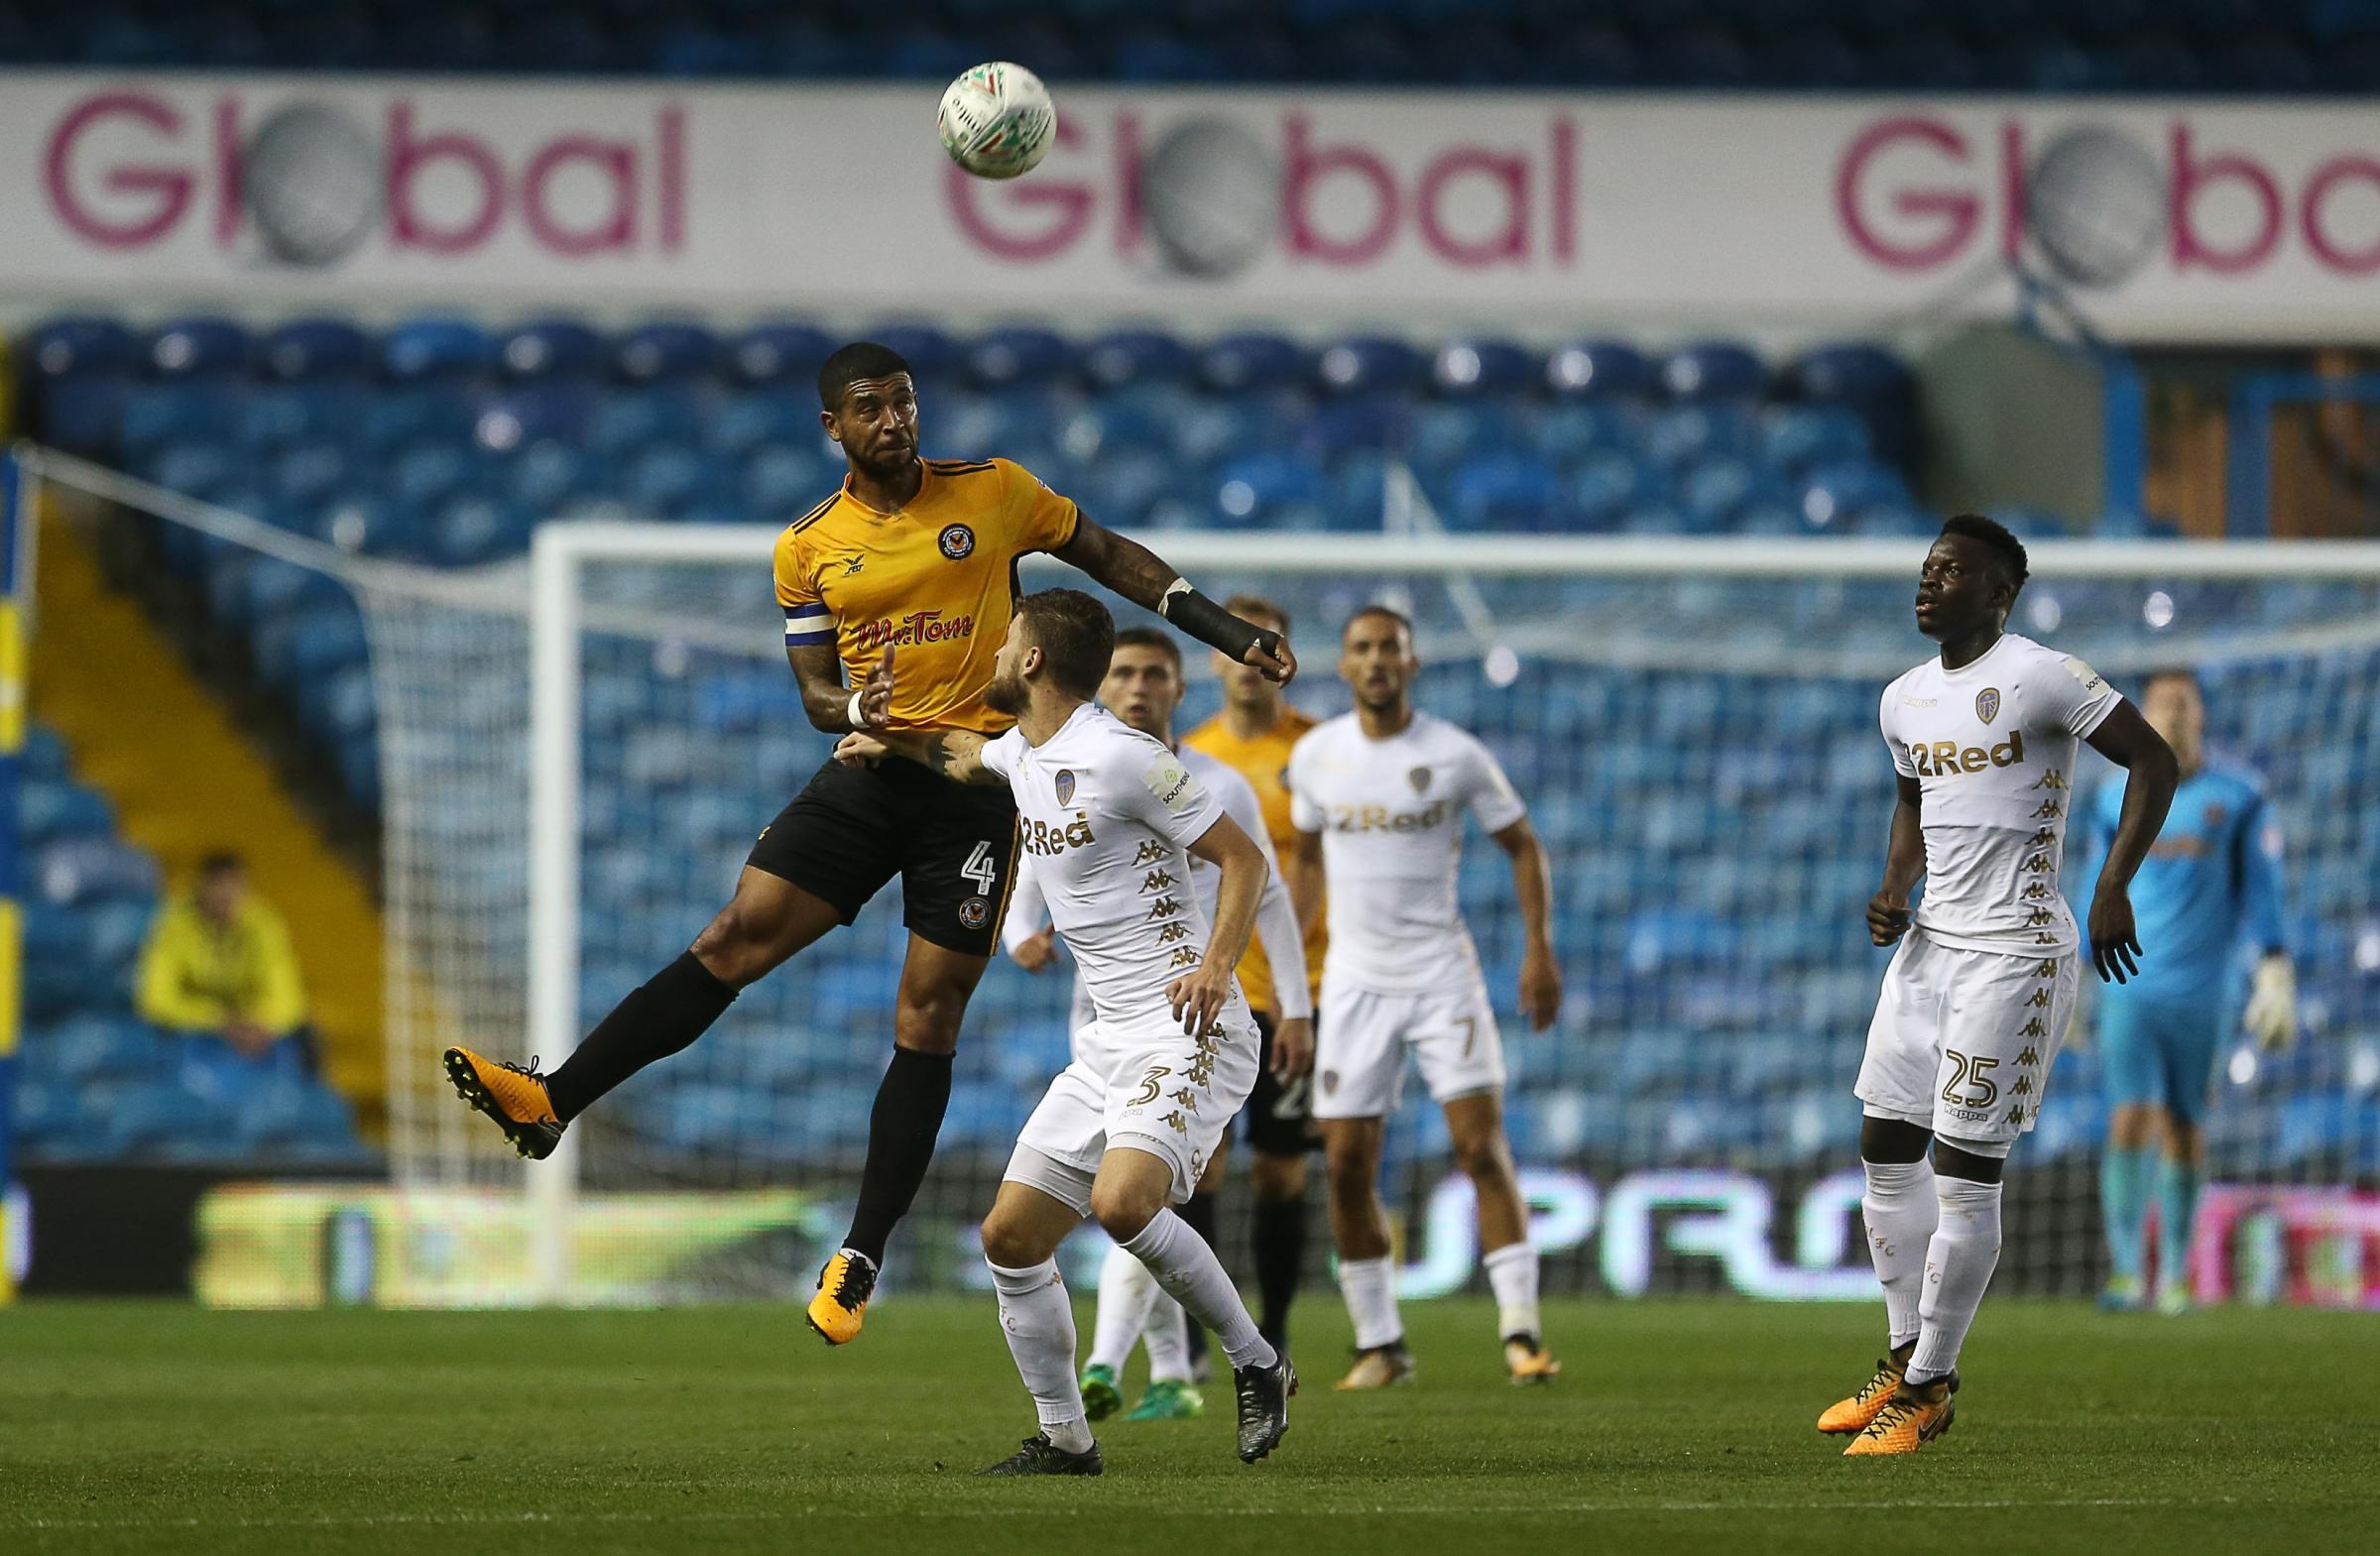 REMATCH: Newport County will take on Leeds United for a second time this season after August's Carabao Cup clash at Elland Road